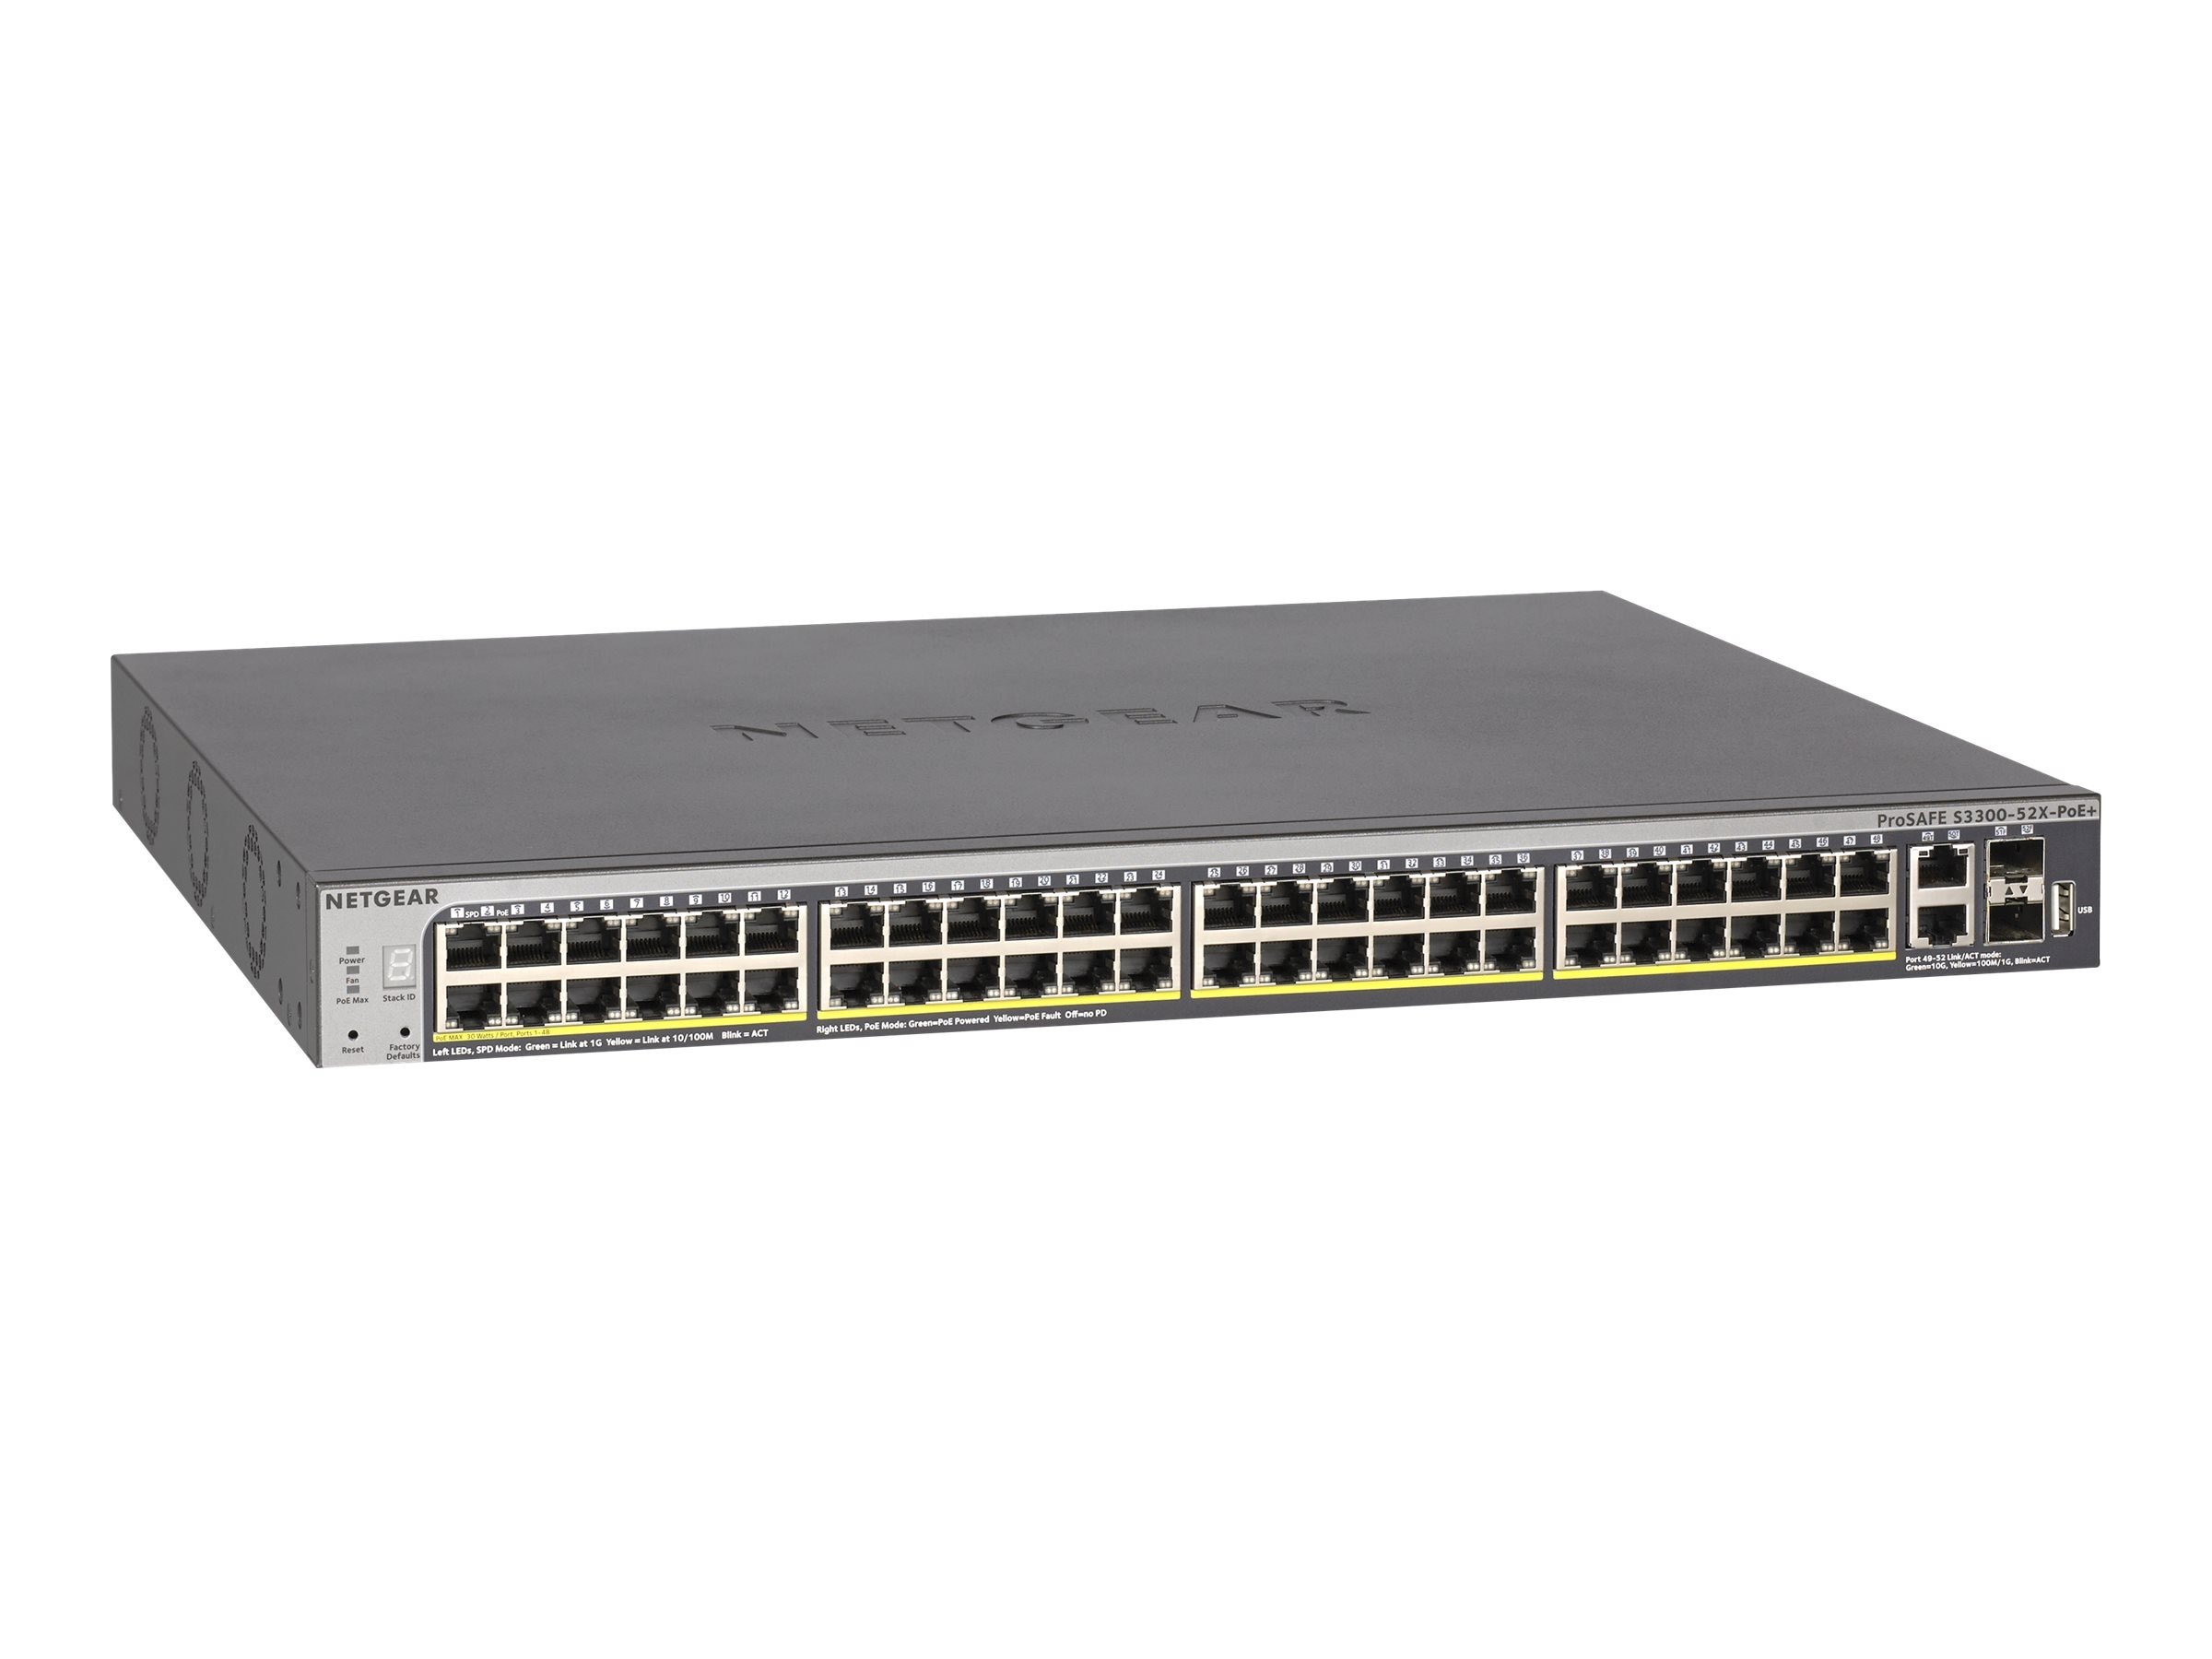 Netgear S3300 52-Port Stackable POE Smart Switch, GS752TXP-100NES